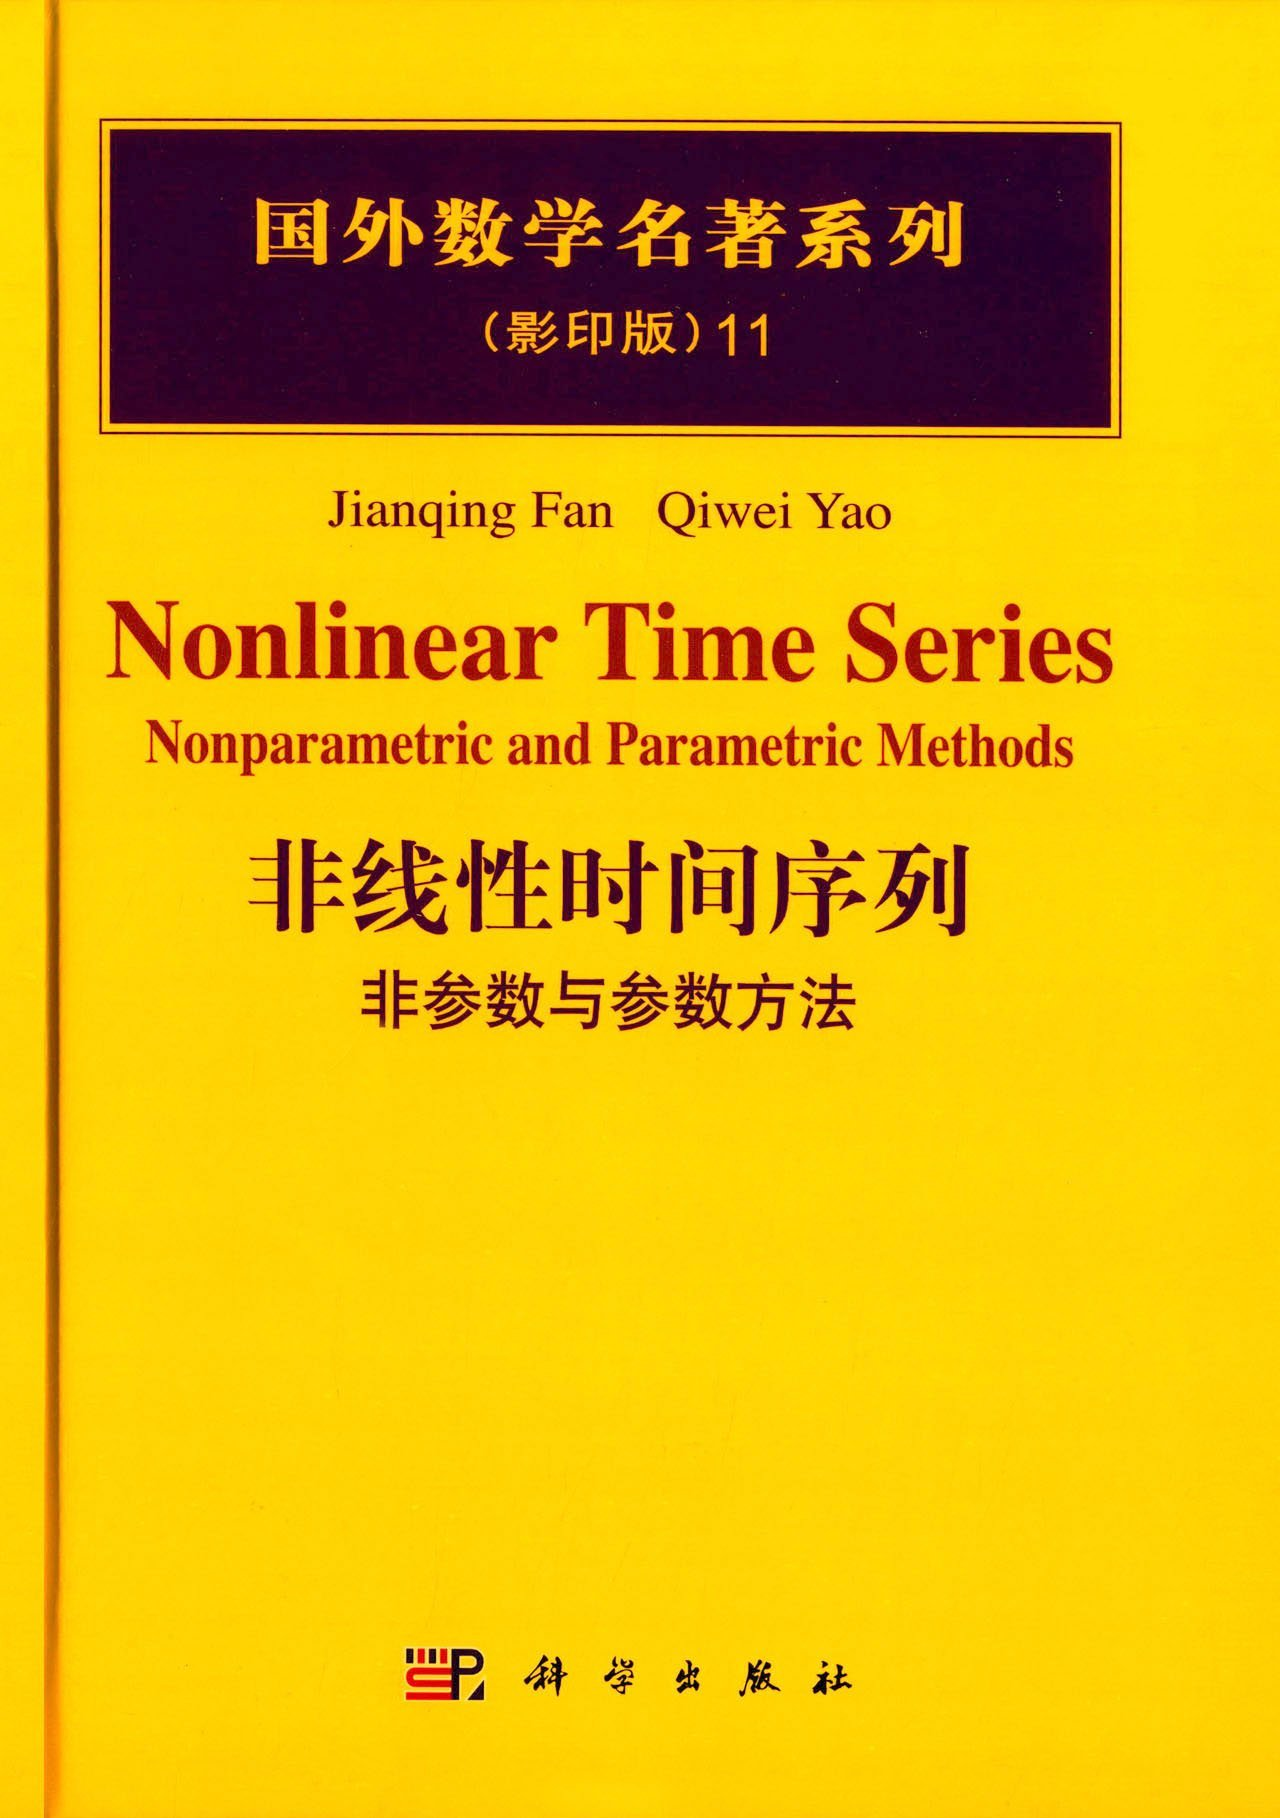 Nonlinear Time Series: Nonparametric and Parametric Methods (Springer Series in Statistics)